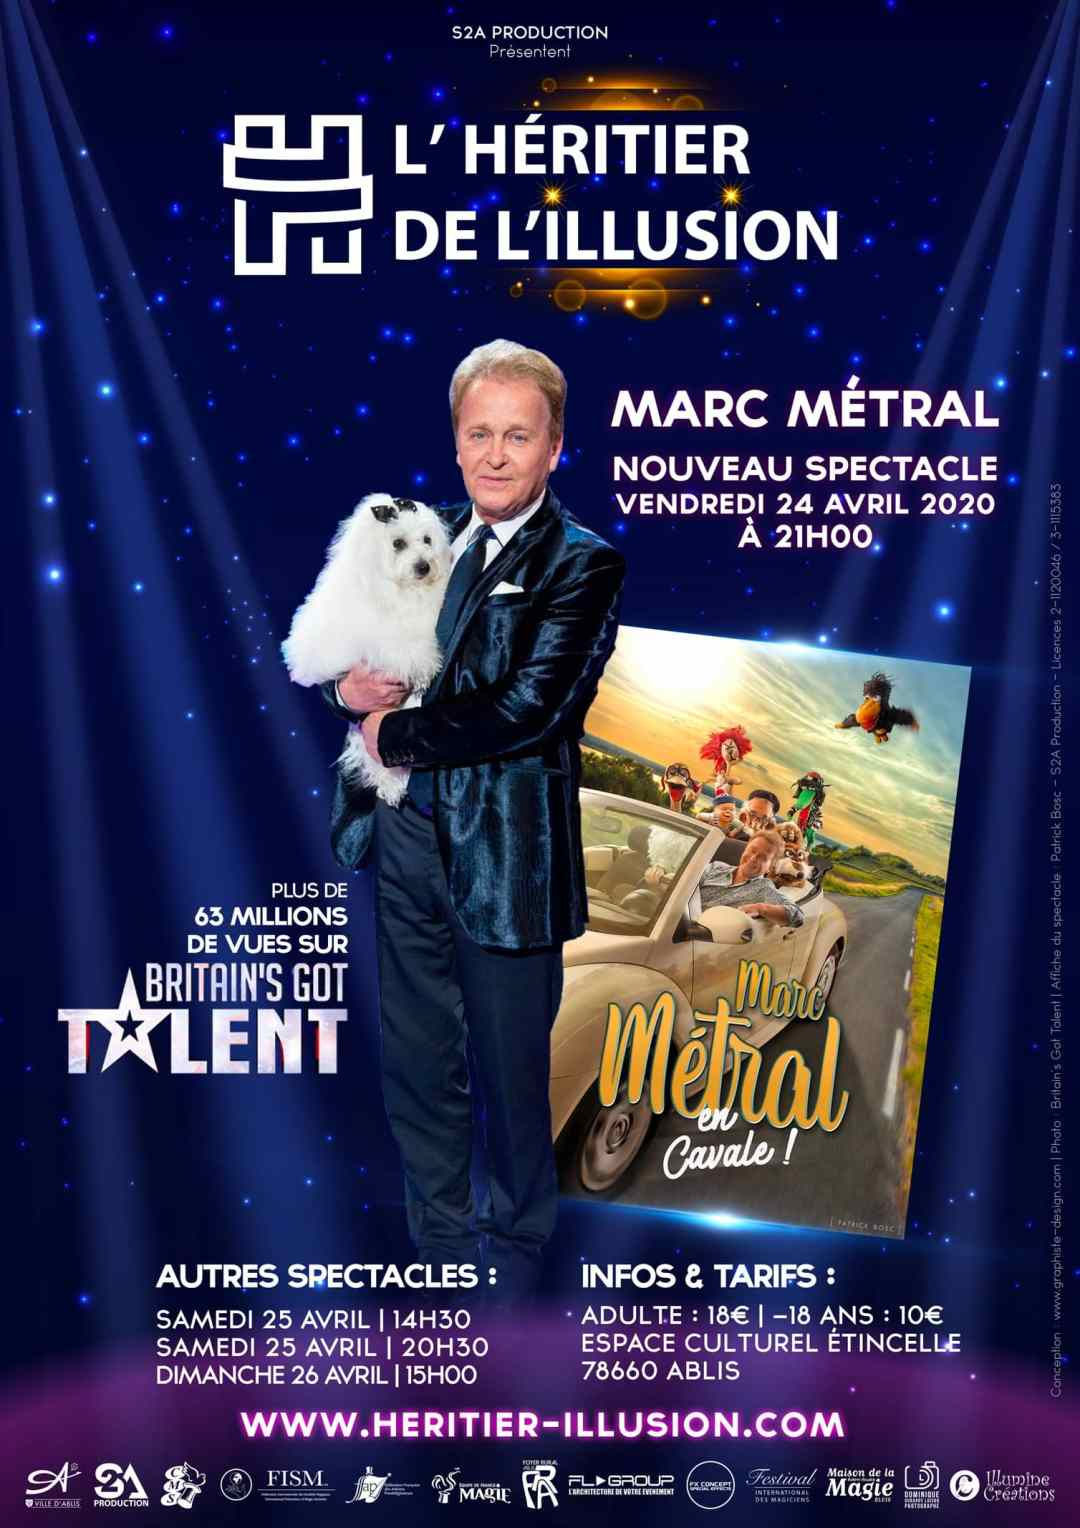 Affiche Marc Métral en cavale Ventriloque - Photo Britain's Got Talent Affiche du spectacle Patrick Bosc